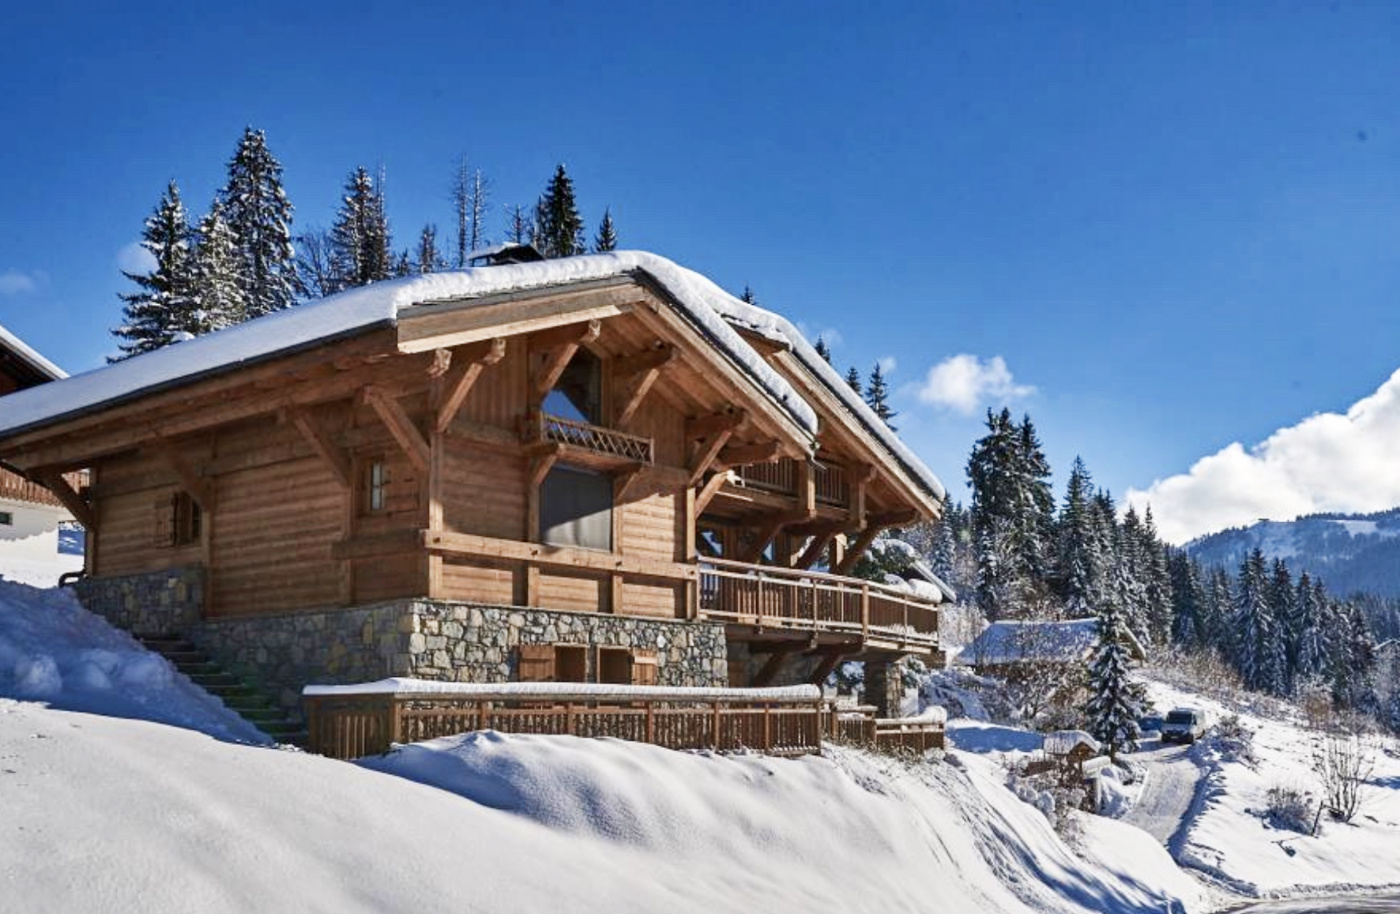 Chalet for Sale in Les Gets France